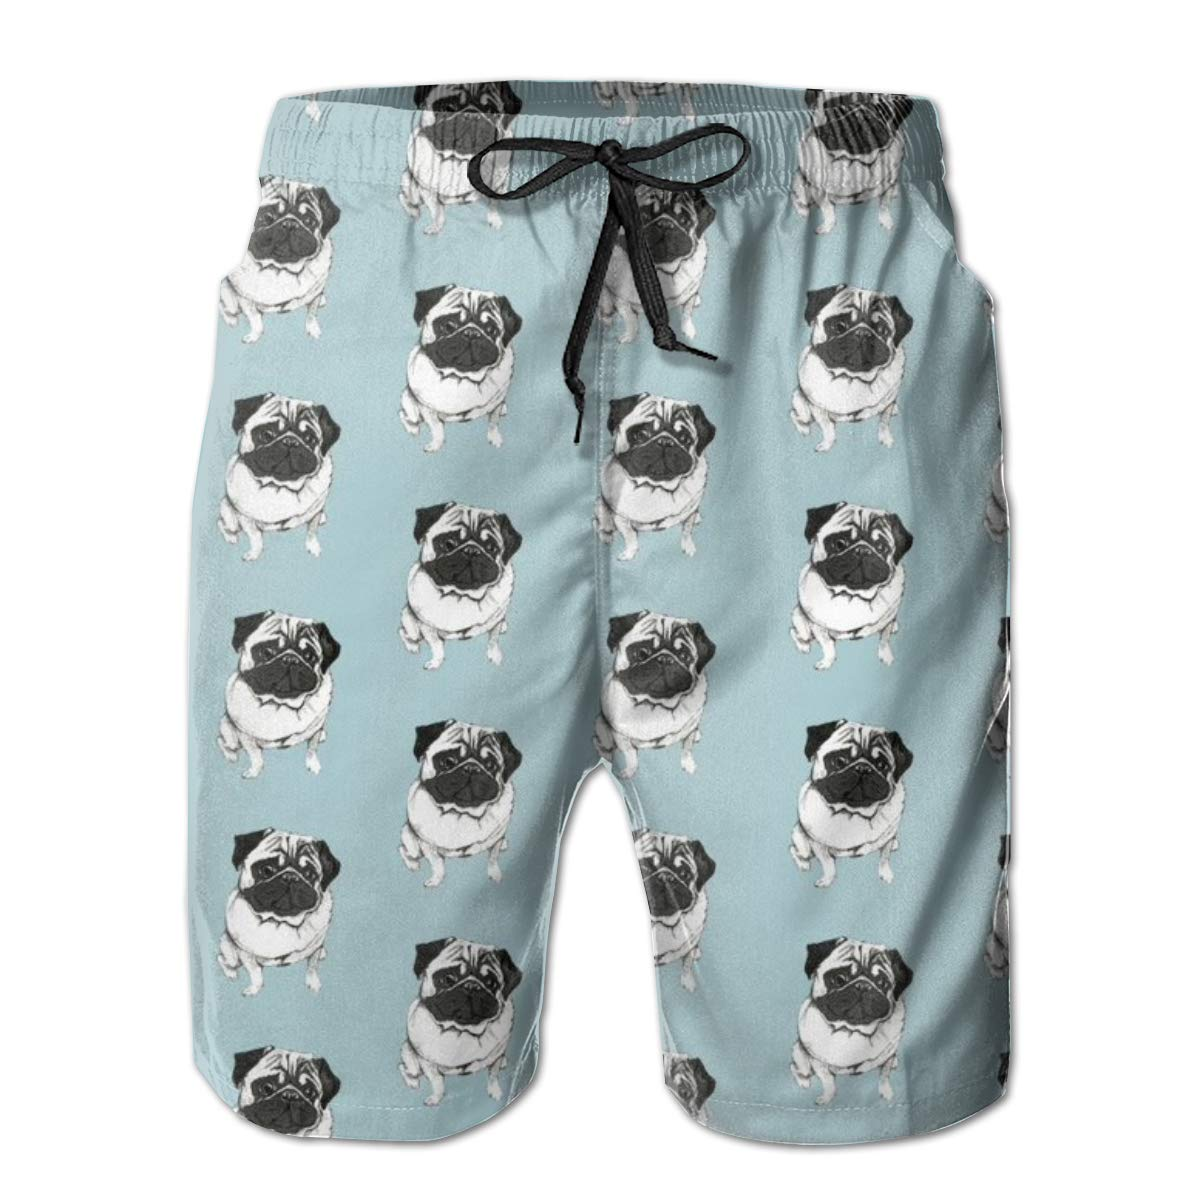 FASUWAVE Mens Swim Trunks Pug Pattern Quick Dry Beach Board Shorts with Mesh Lining